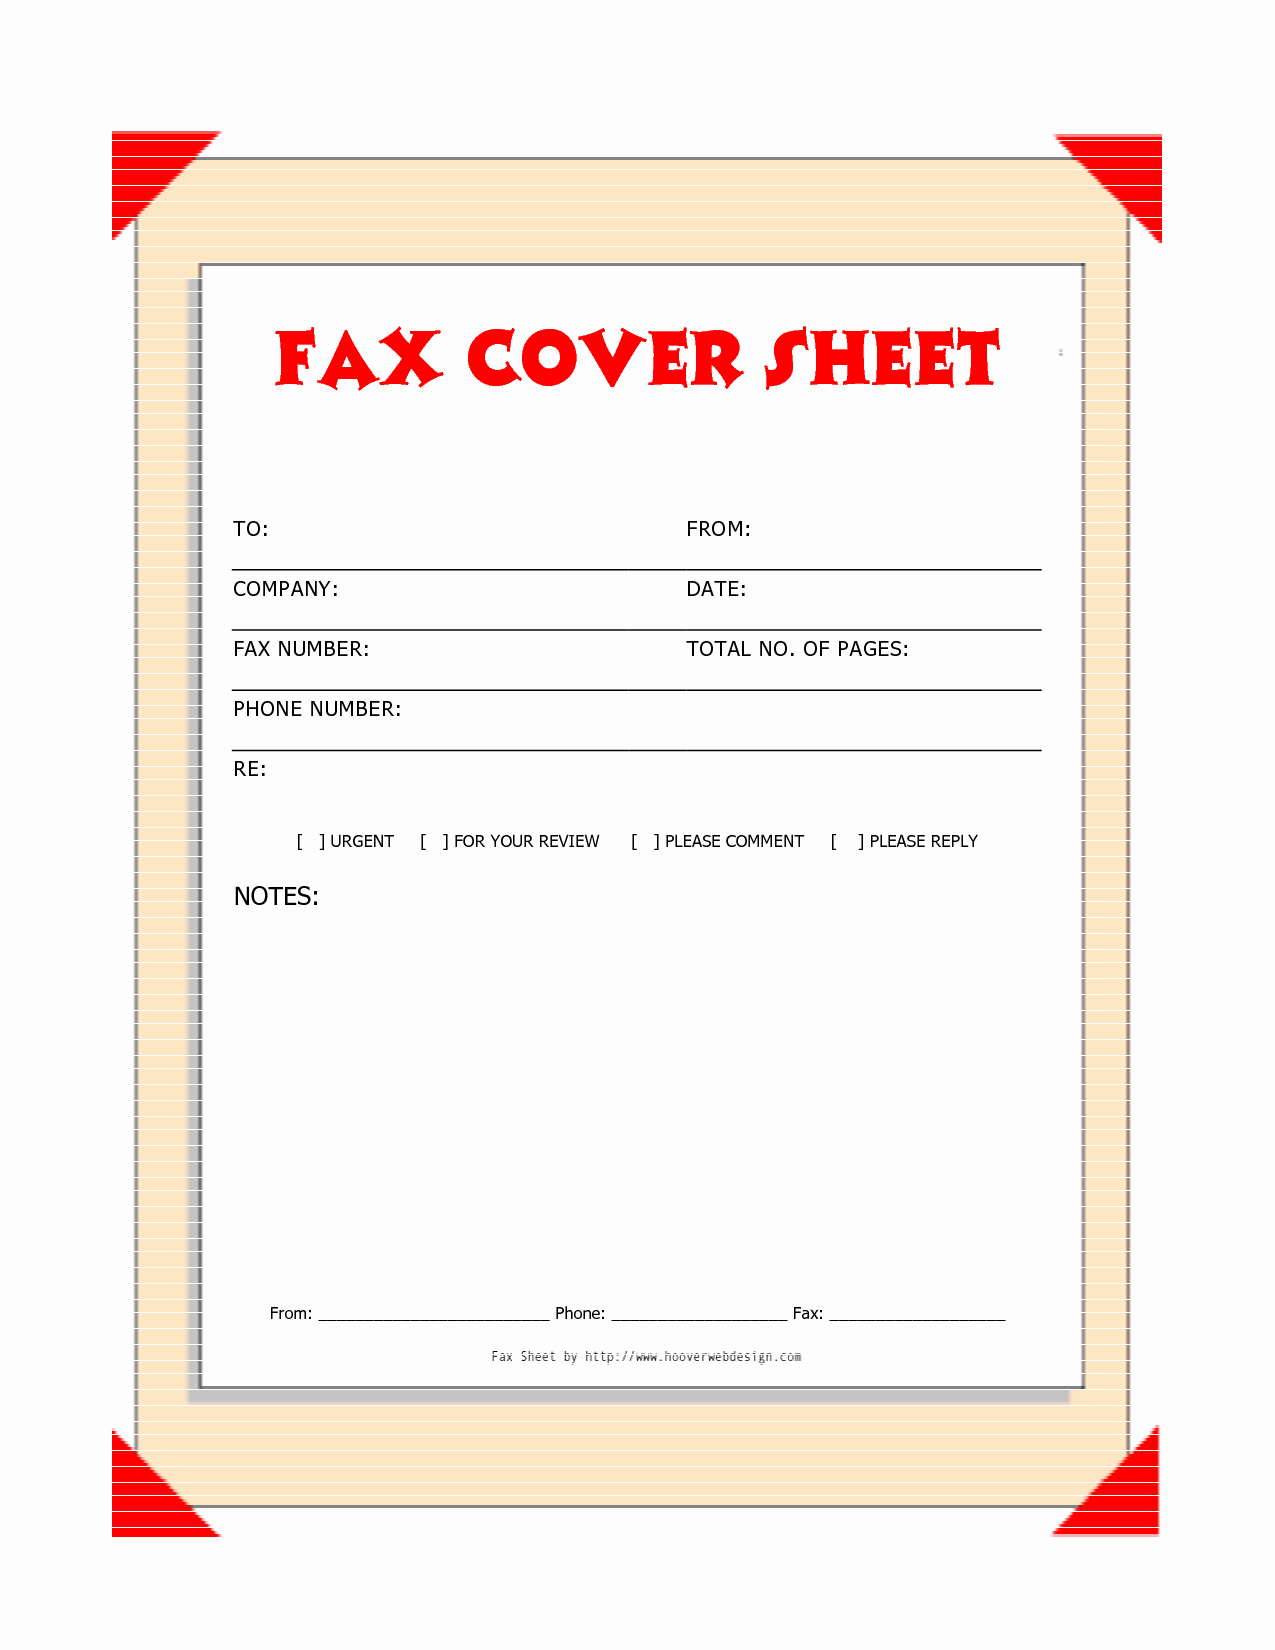 Fax Cover Sheet Template Free Luxury Free Downloads Fax Covers Sheets